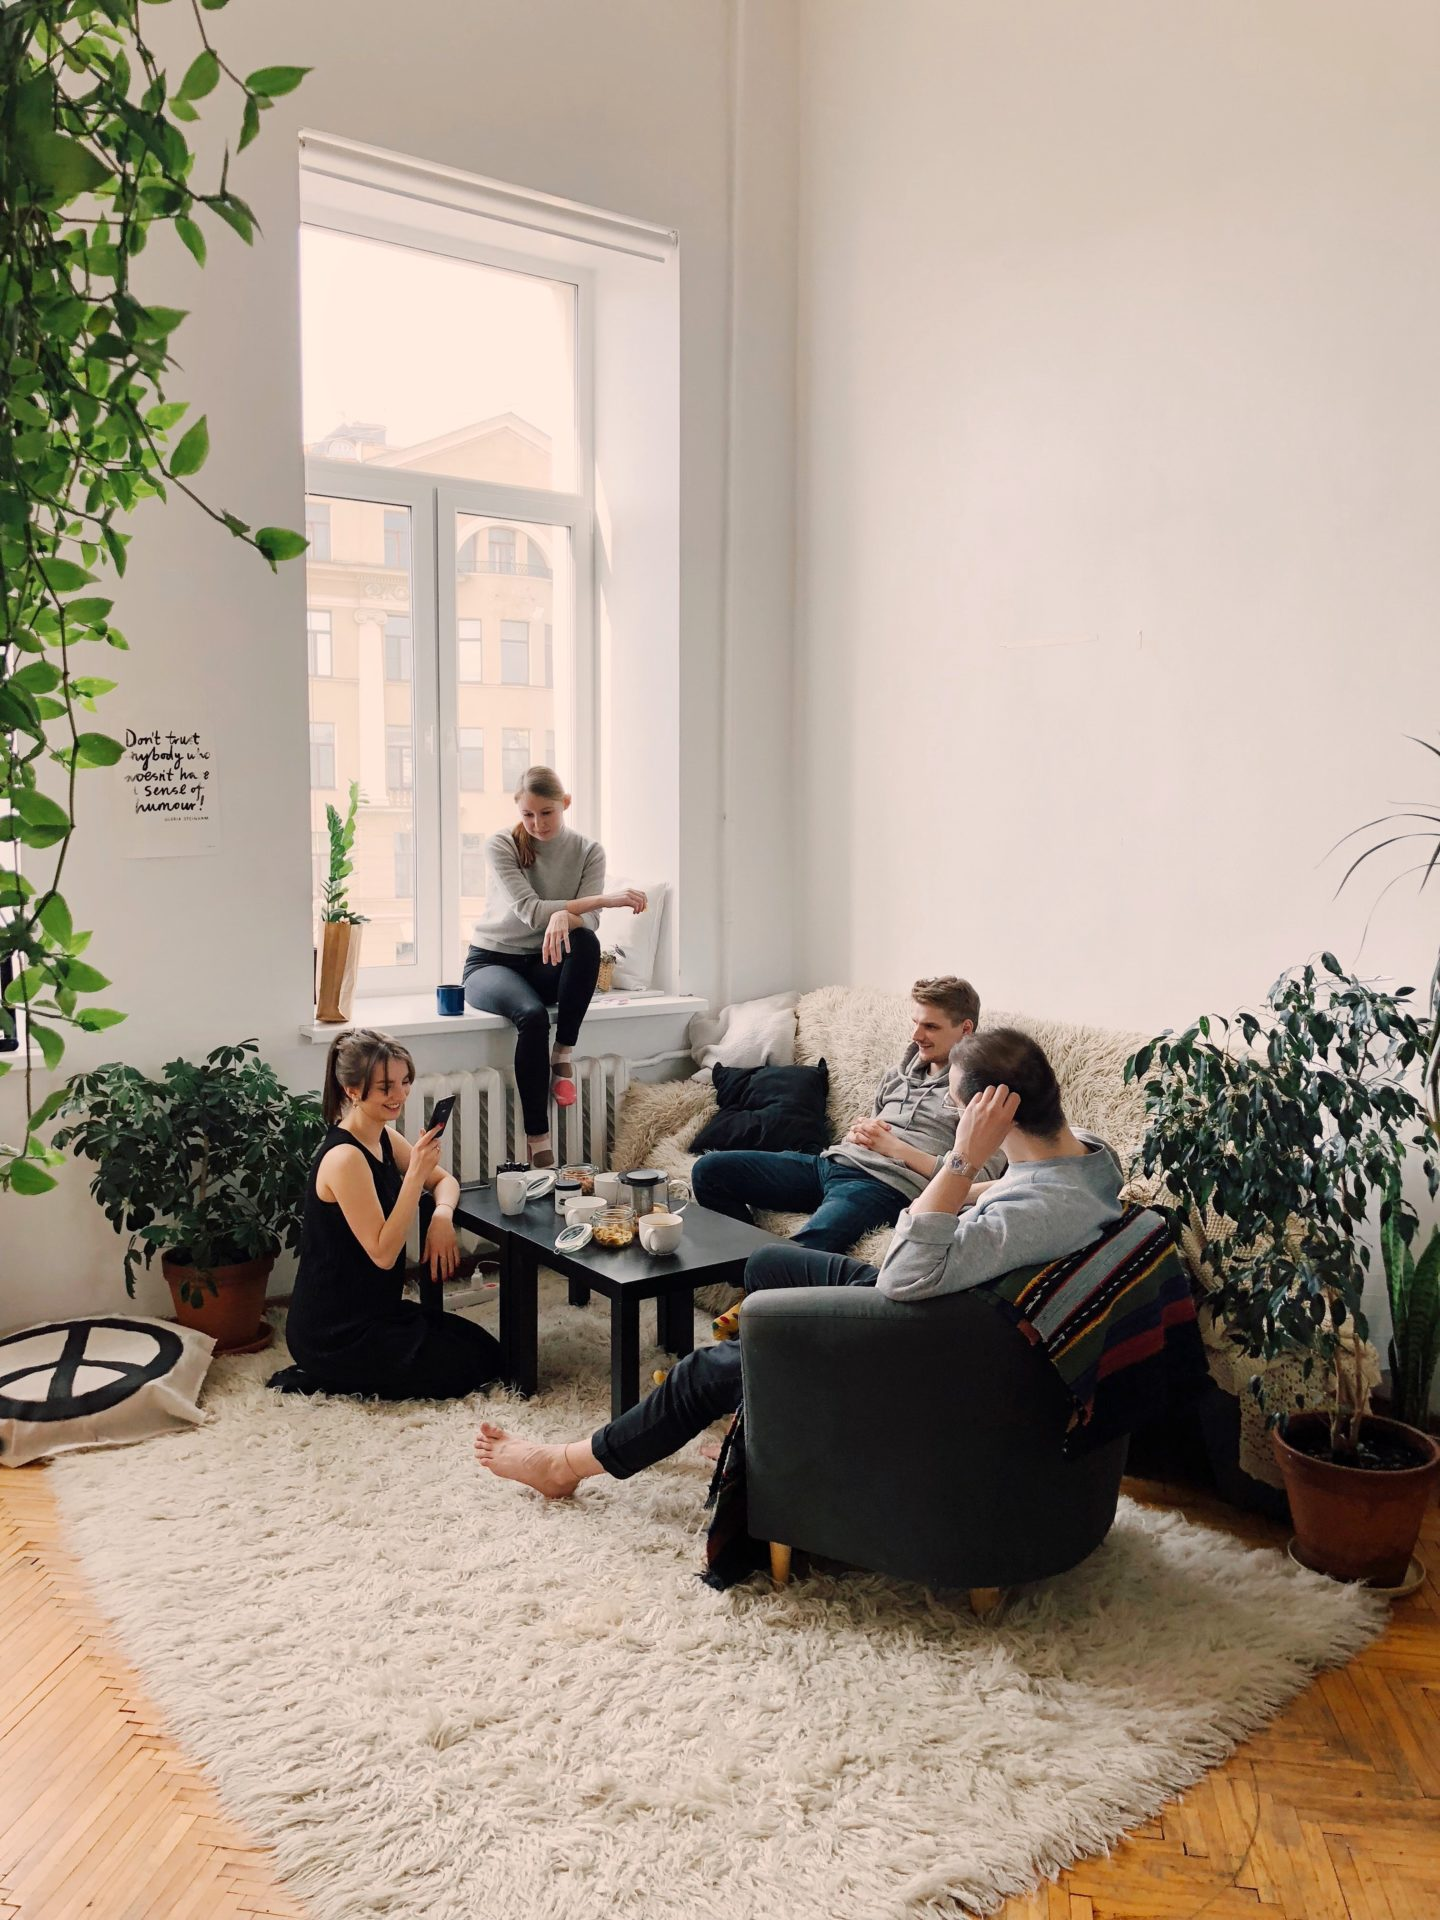 bohem housing co-living